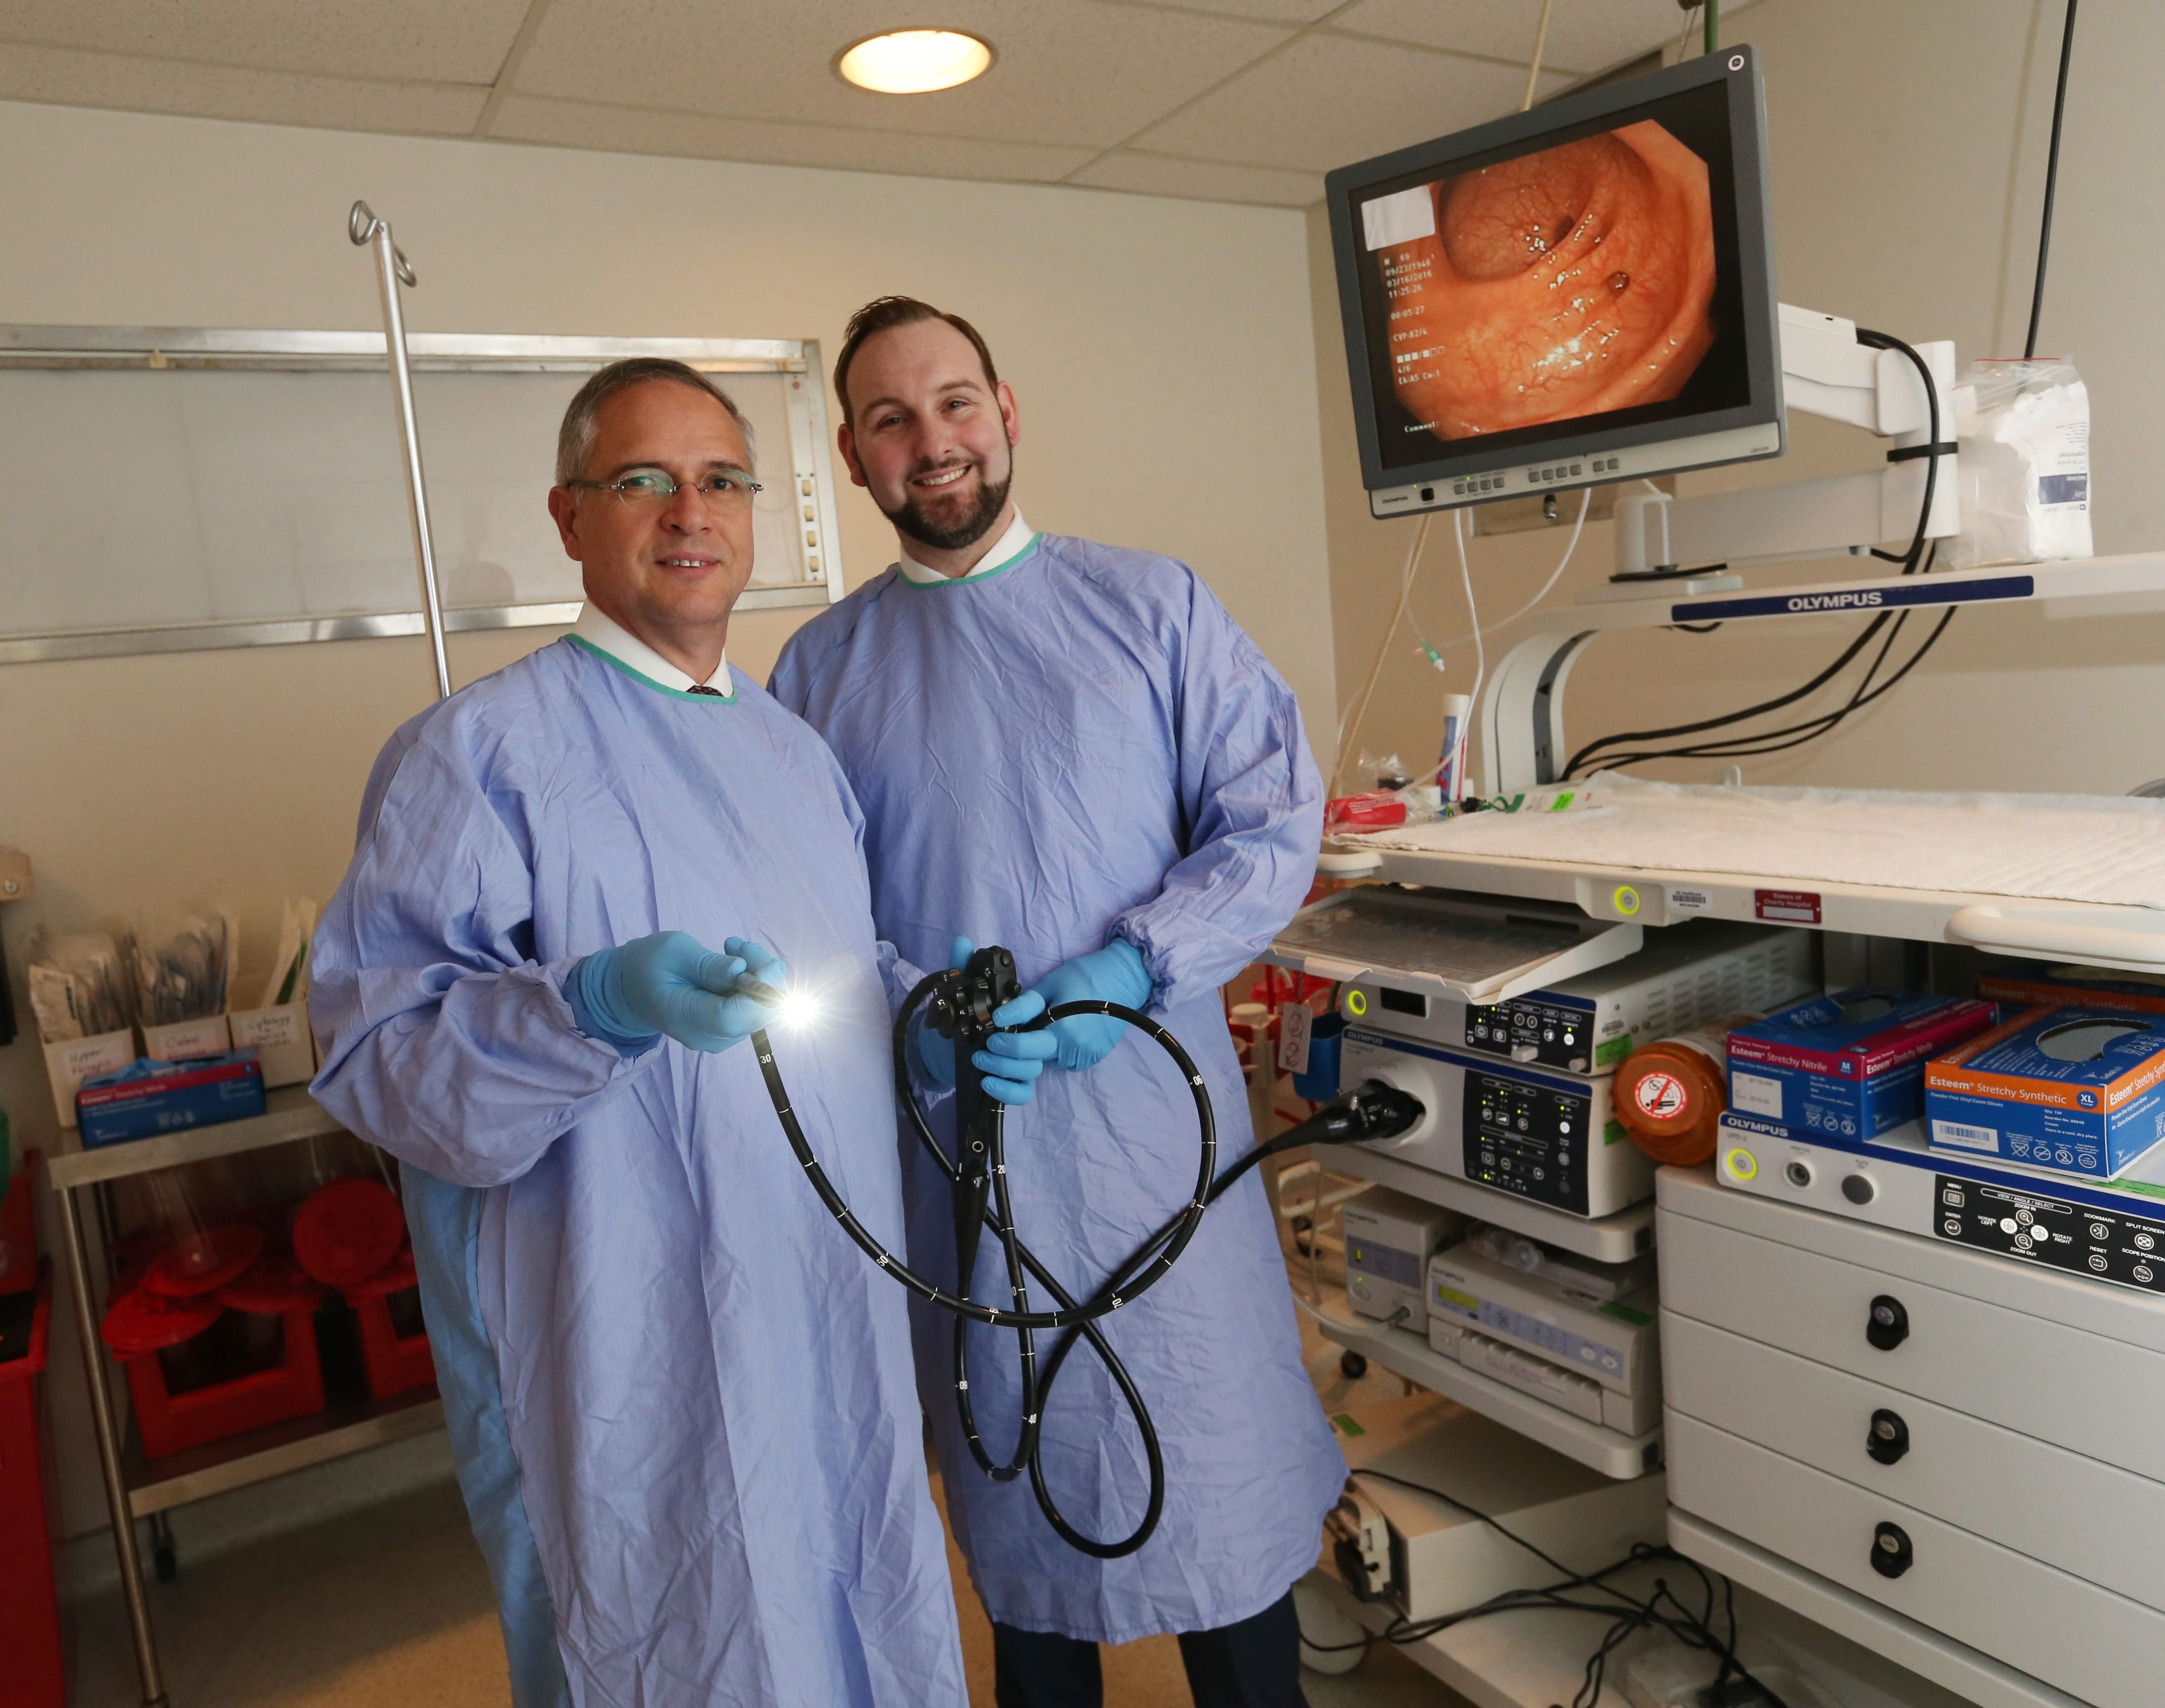 """... Our prep is much easier. We also use sedation, so everyone is very comfortable and most people don't even remember the procedure afterward.""  – Dr. Brian Matier, right, talking about colonoscopies. He is pictured with his colleague Dr. Bryan Butler at Sisters Hospital. Butler is holding a scope with a high-definition camera that is used during the procedure."